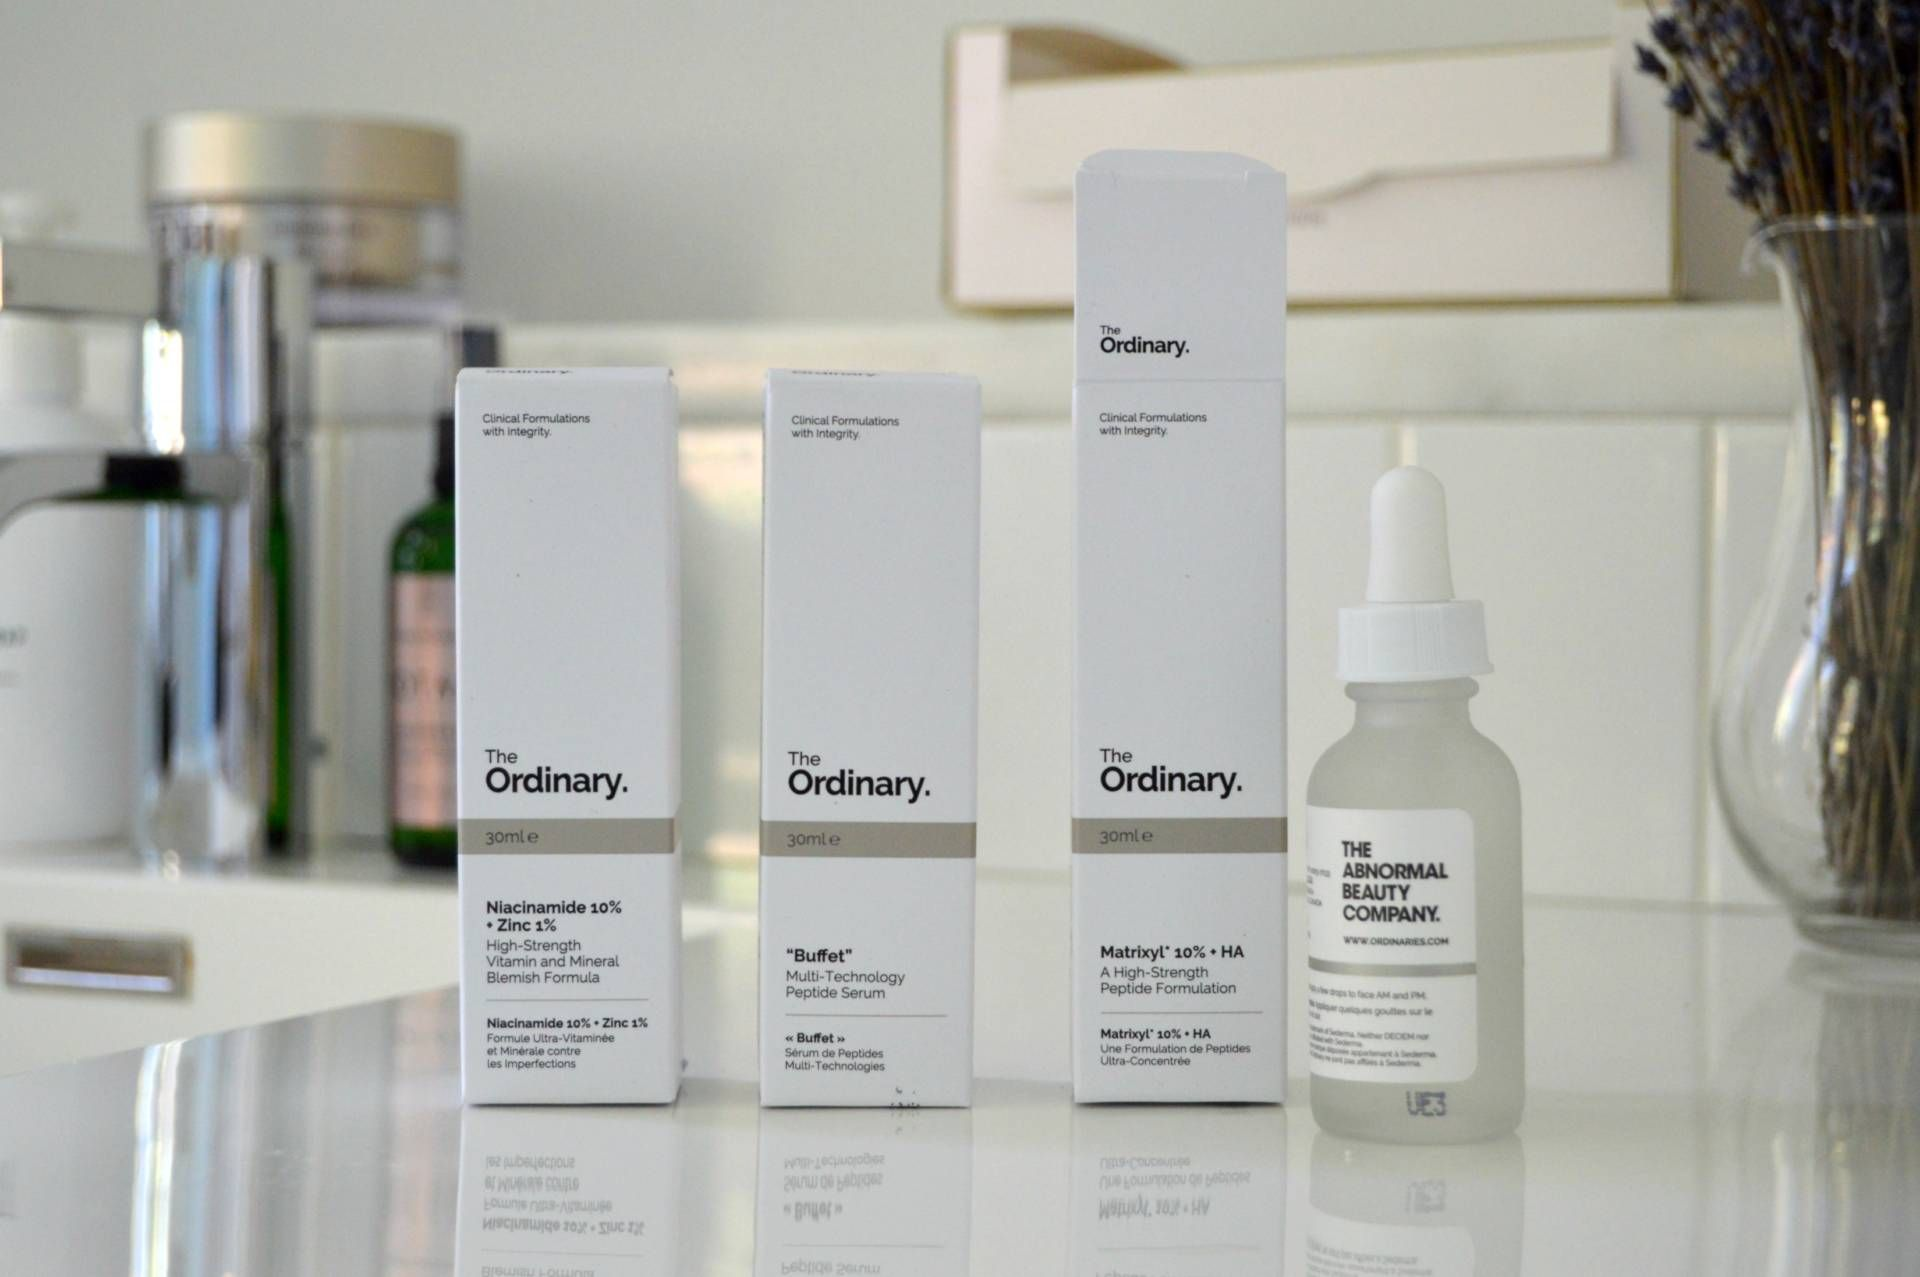 The Ordinary Serum Range it's everything but The